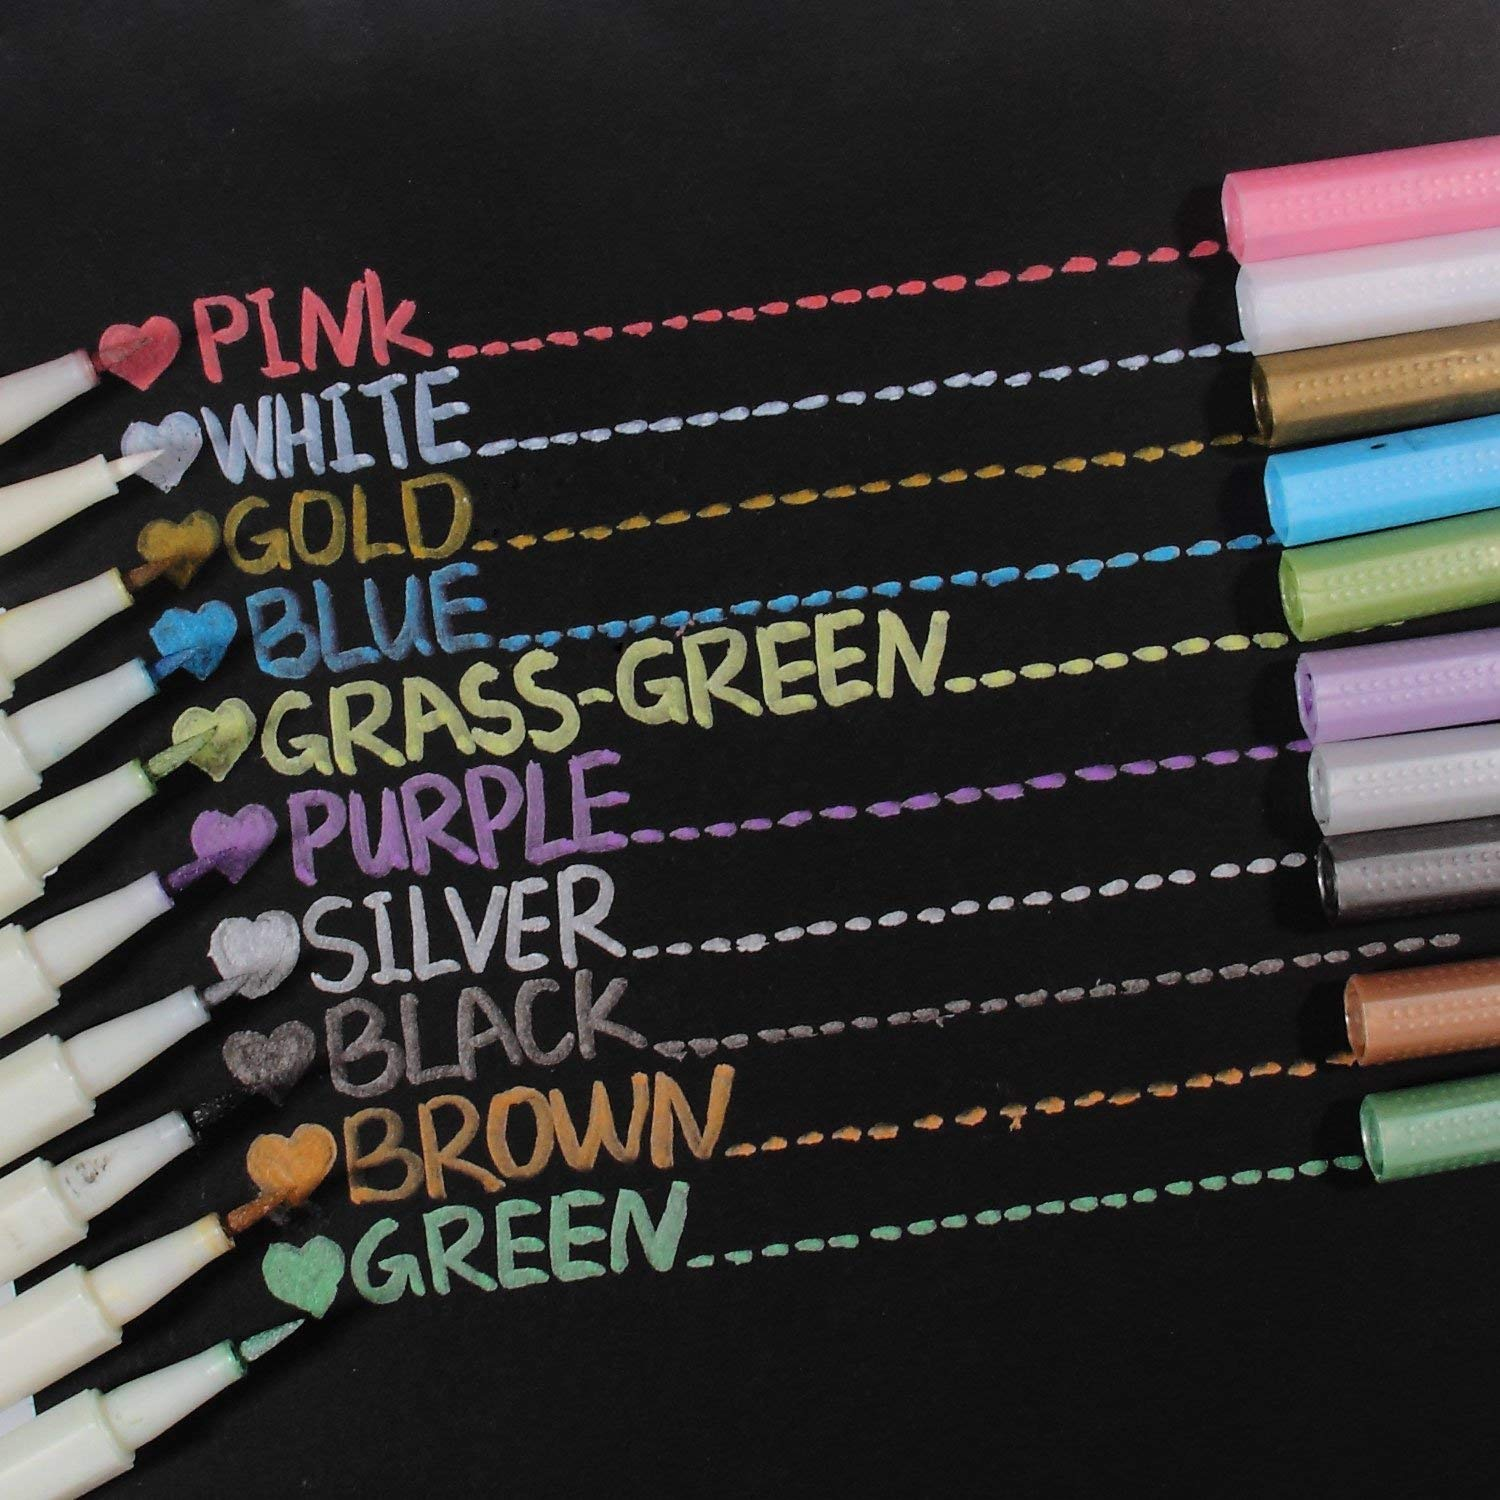 Metallic Markers Glitter Paint Pen Calligraphy Brush Pens, Ohuhu Set of 10 for DIY Birthday Greeting Gift Thank You Card, Scrapbook Photo Album, Rock Art Painting, Brush Tip Back to School Art Supply by Ohuhu (Image #8)